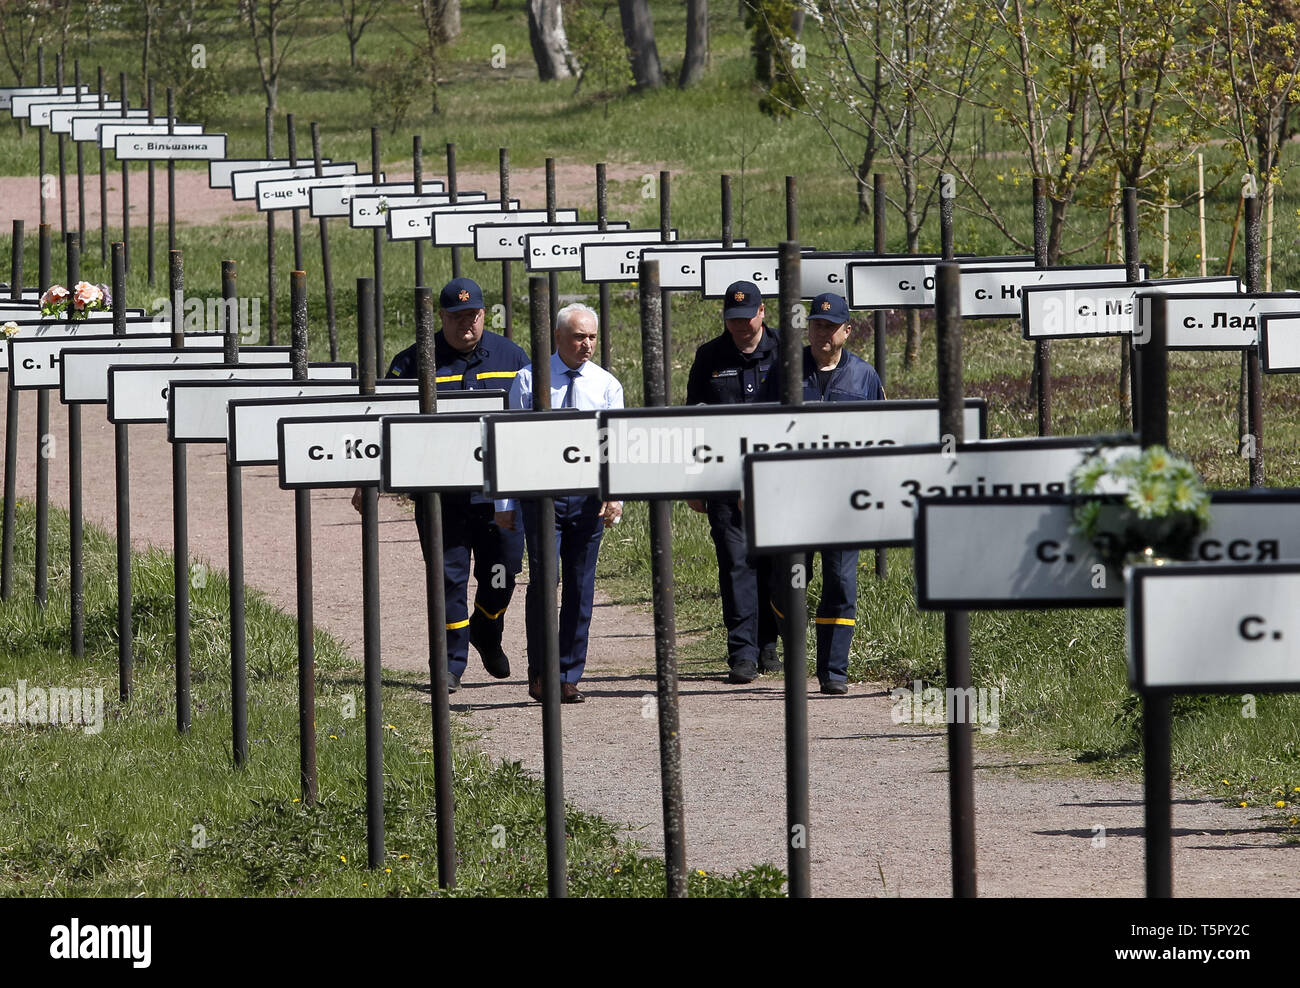 Kiev, Kiev, Ukraine. 26th Apr, 2019. Plates with the names of 162 abandoned and evacuated villages, as a result Chernobyl disaster, are seen in a memorial complex 'Star Wormwood' during the anniversary.Ukrainians mark the 33rd anniversary of Chernobyl catastrophe. The explosion of the fourth block of the Chernobyl nuclear plant on 26 April 1986 is still regarded as the biggest accident in the history of nuclear power generation. Credit: Pavlo Gonchar/SOPA Images/ZUMA Wire/Alamy Live News - Stock Image